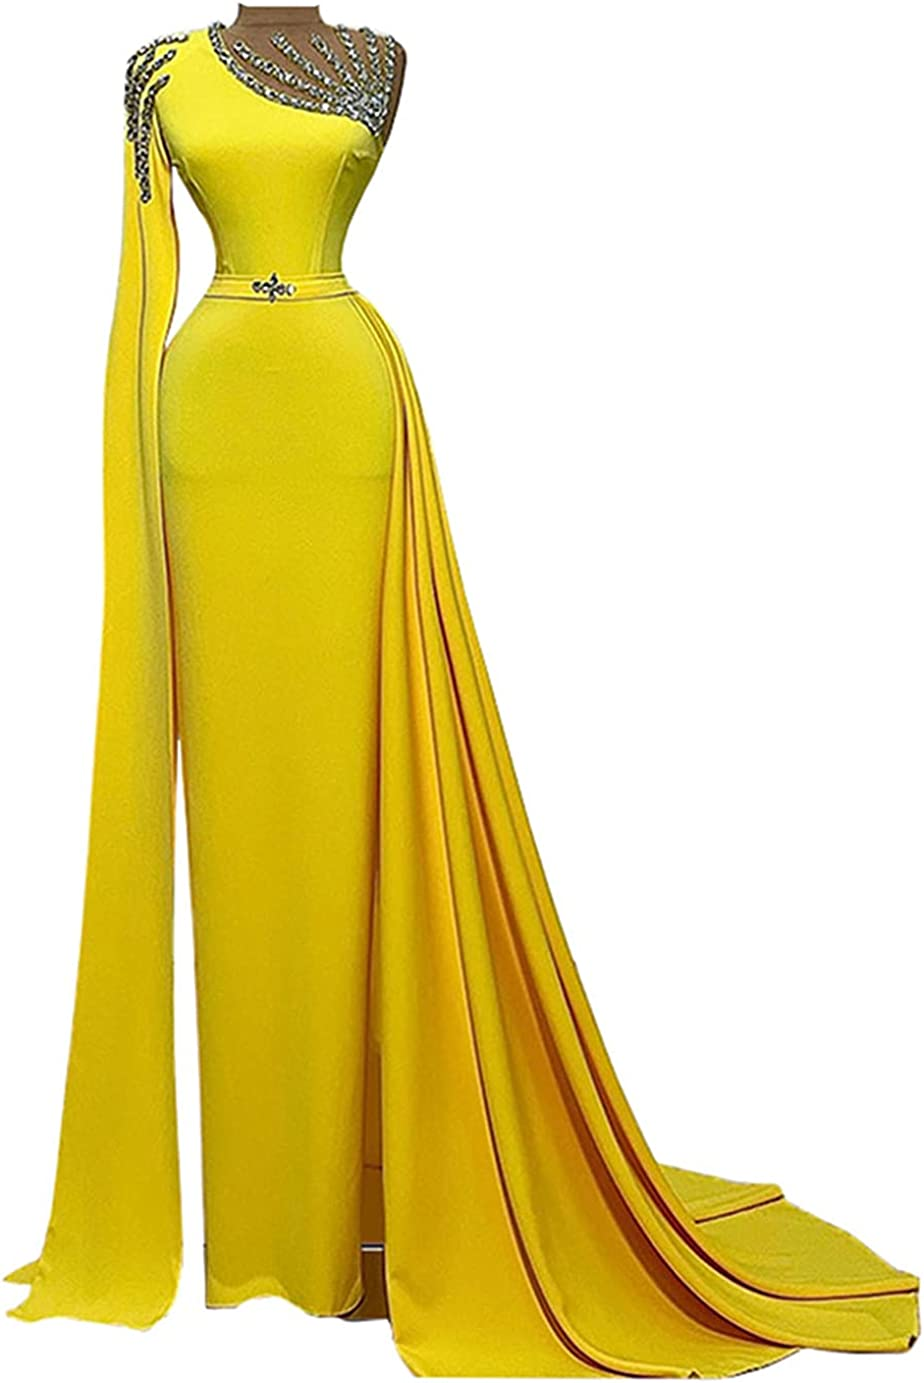 Keting Yellow Satin Crystals Mermaid Prom Evening Shower Party Dress Celebrity Pageant Gown